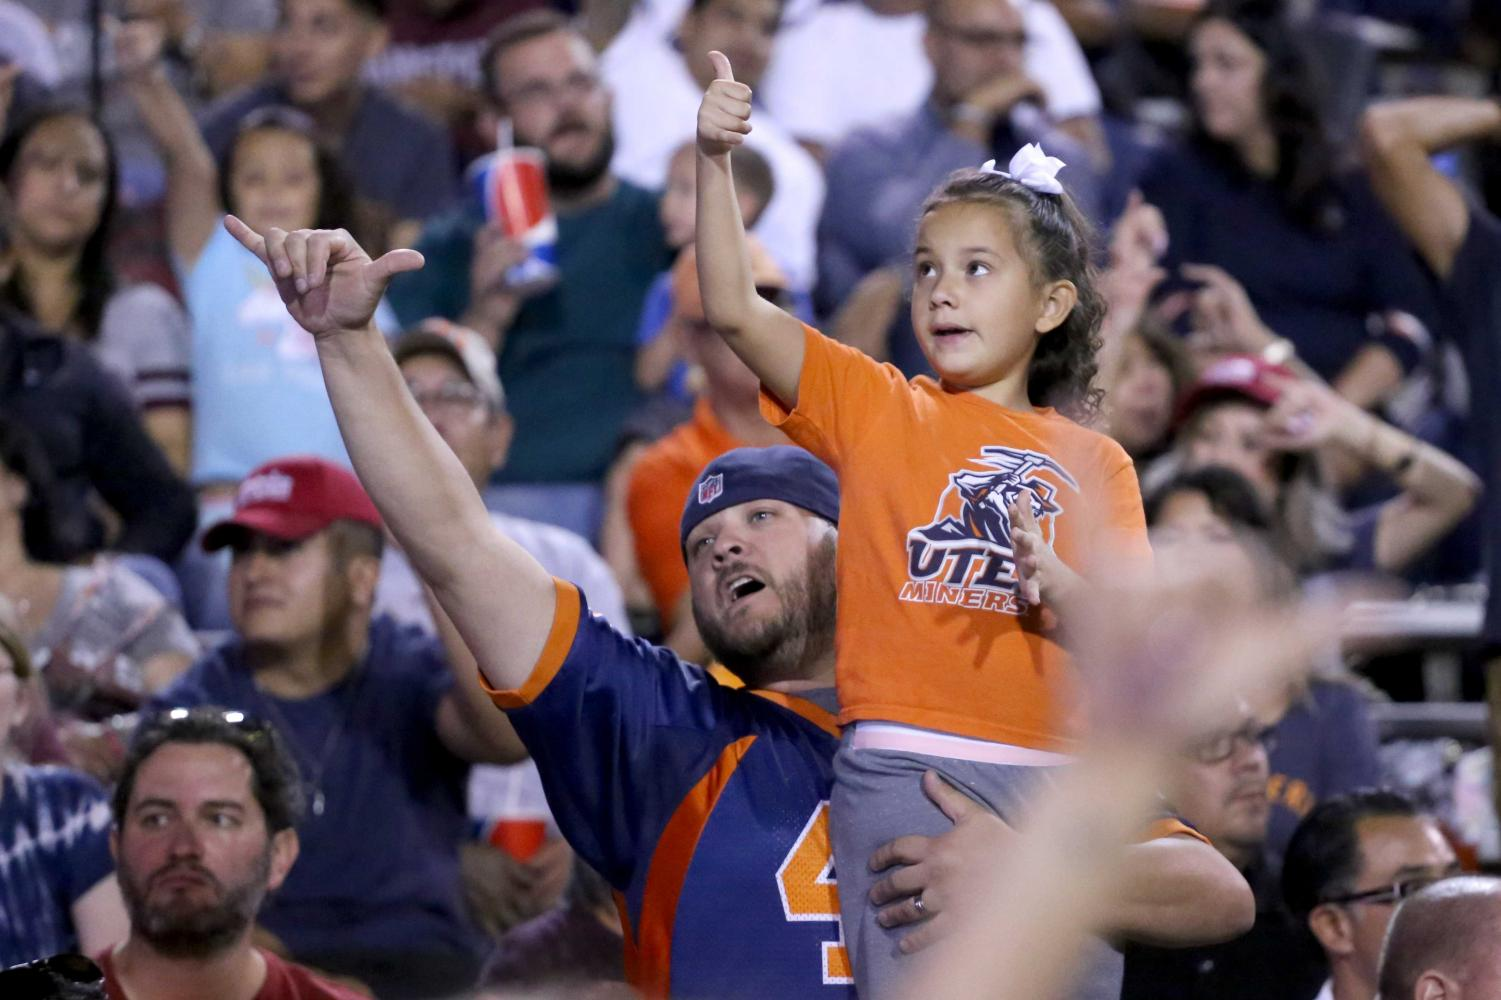 Fans+celebrate+with+the+UTEP+cheerleaders+as+they+throw+up+their+picks+up.